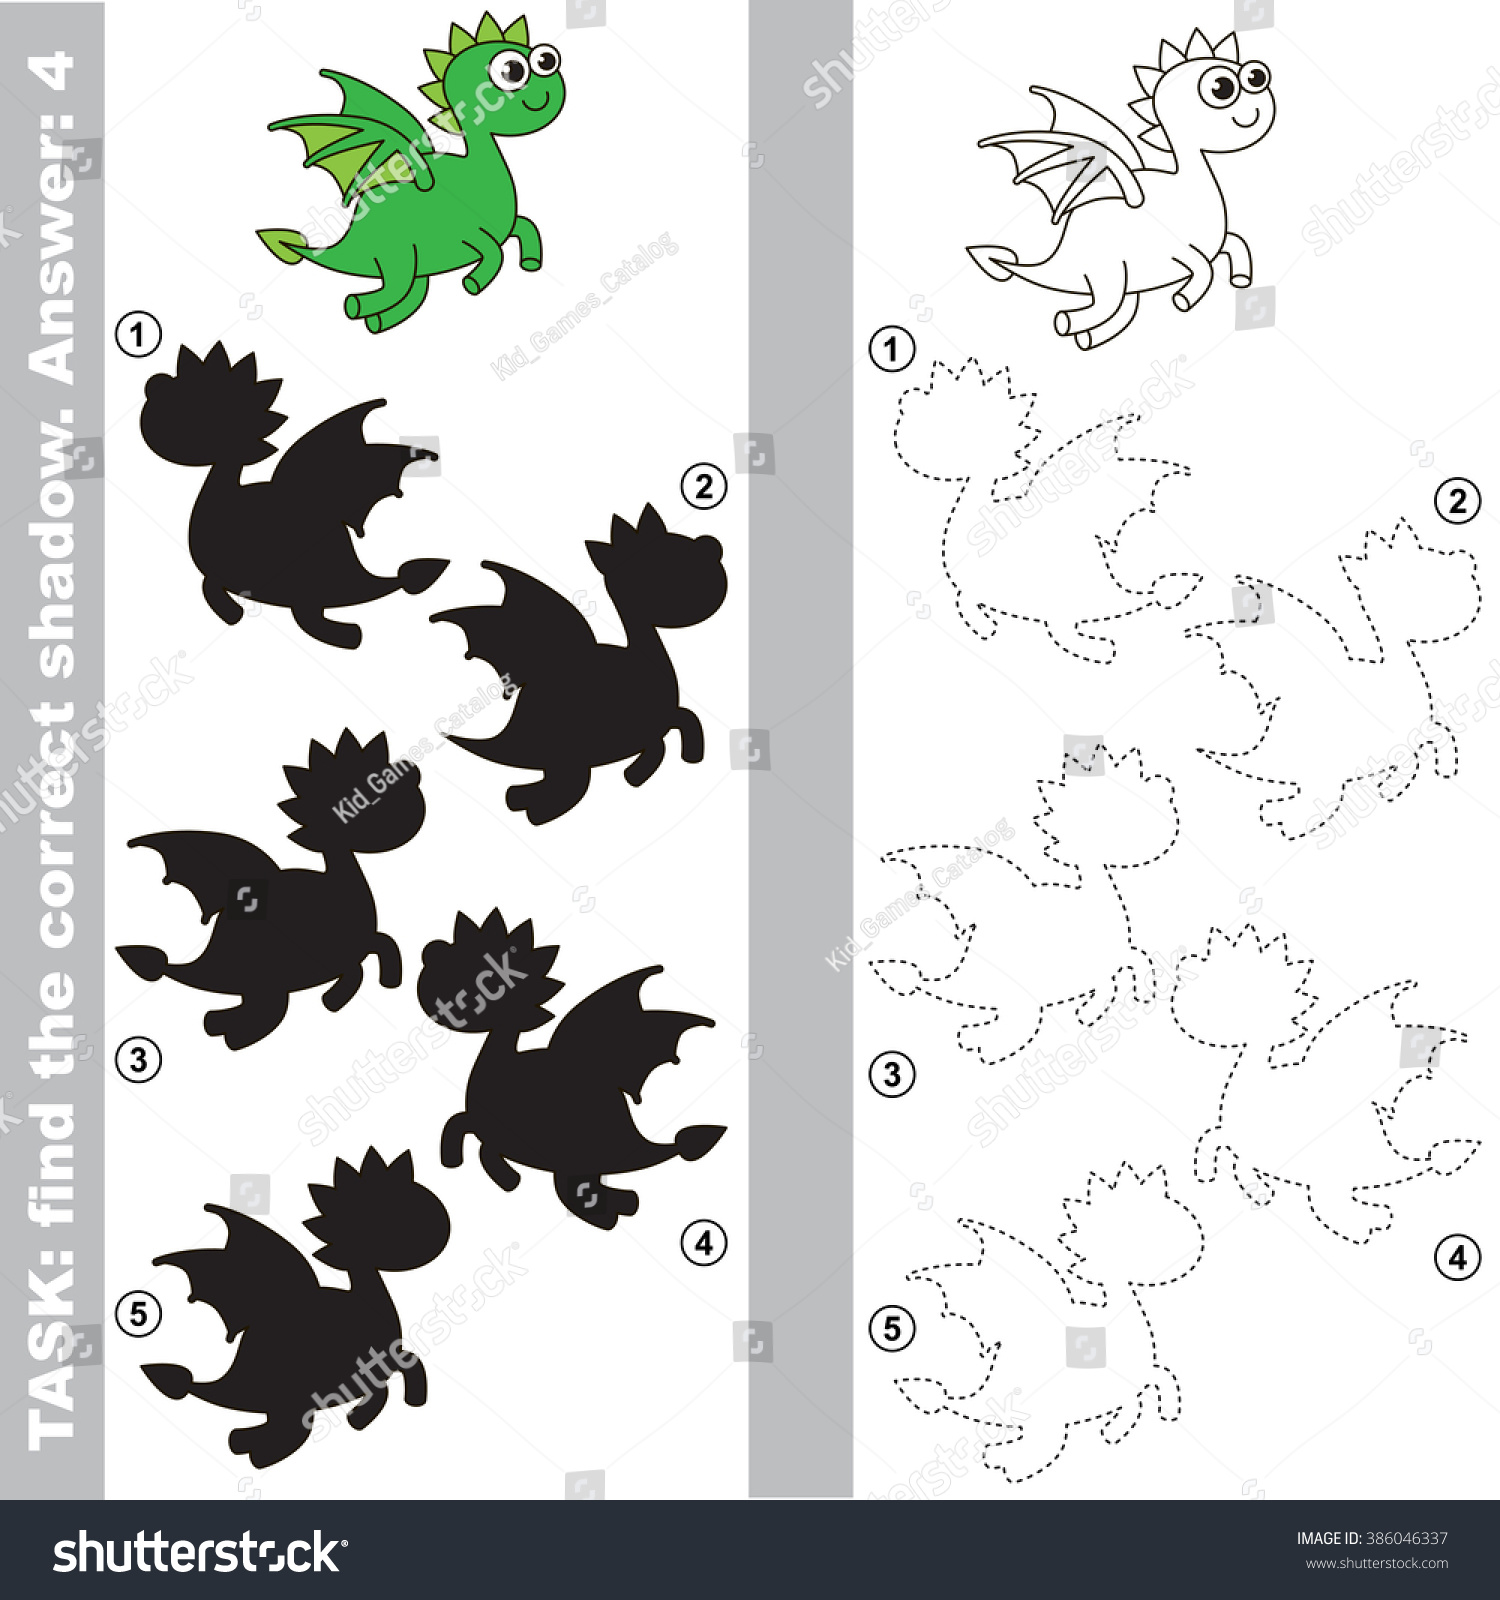 Dragon Different Shadows Find Correct One Stock Vector